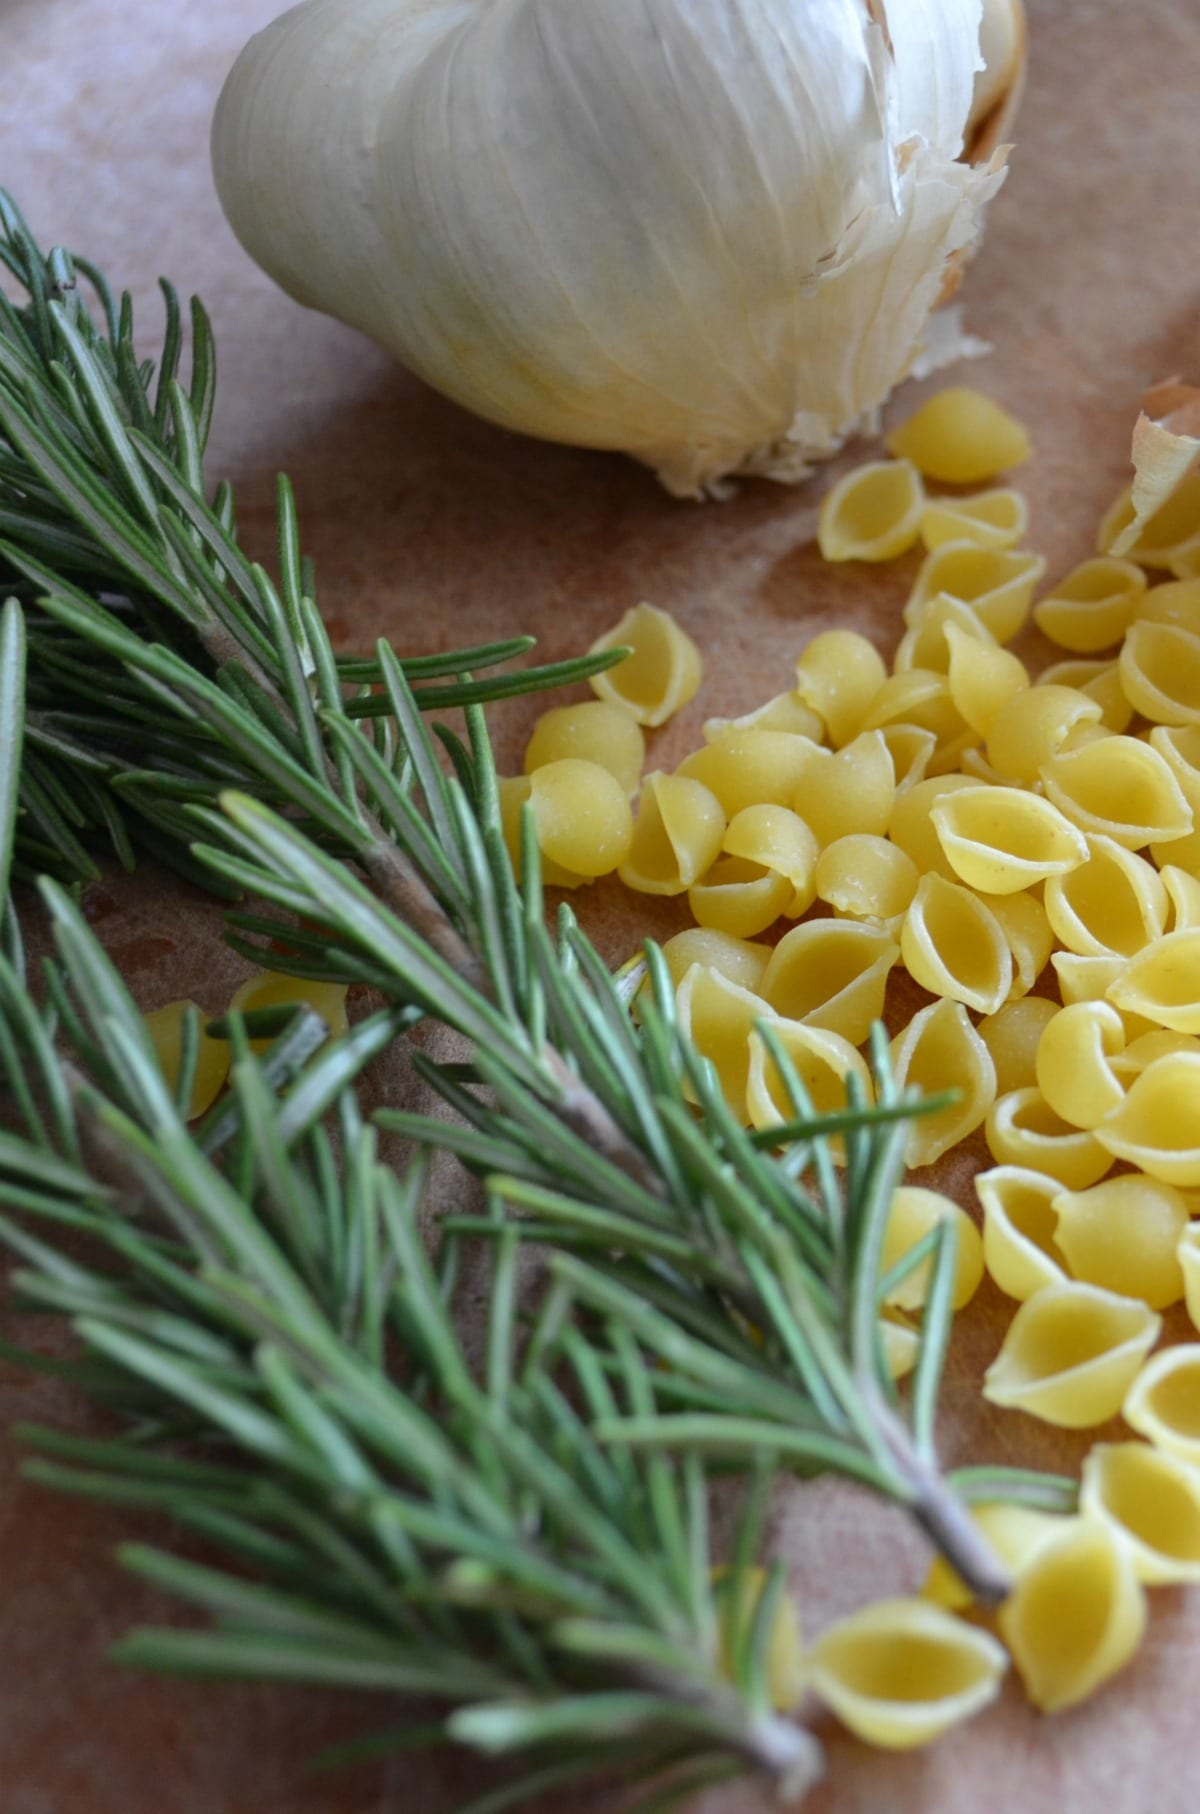 Pasta Fagioli ingredients include fresh rosemary, garlic, and small pasta shells